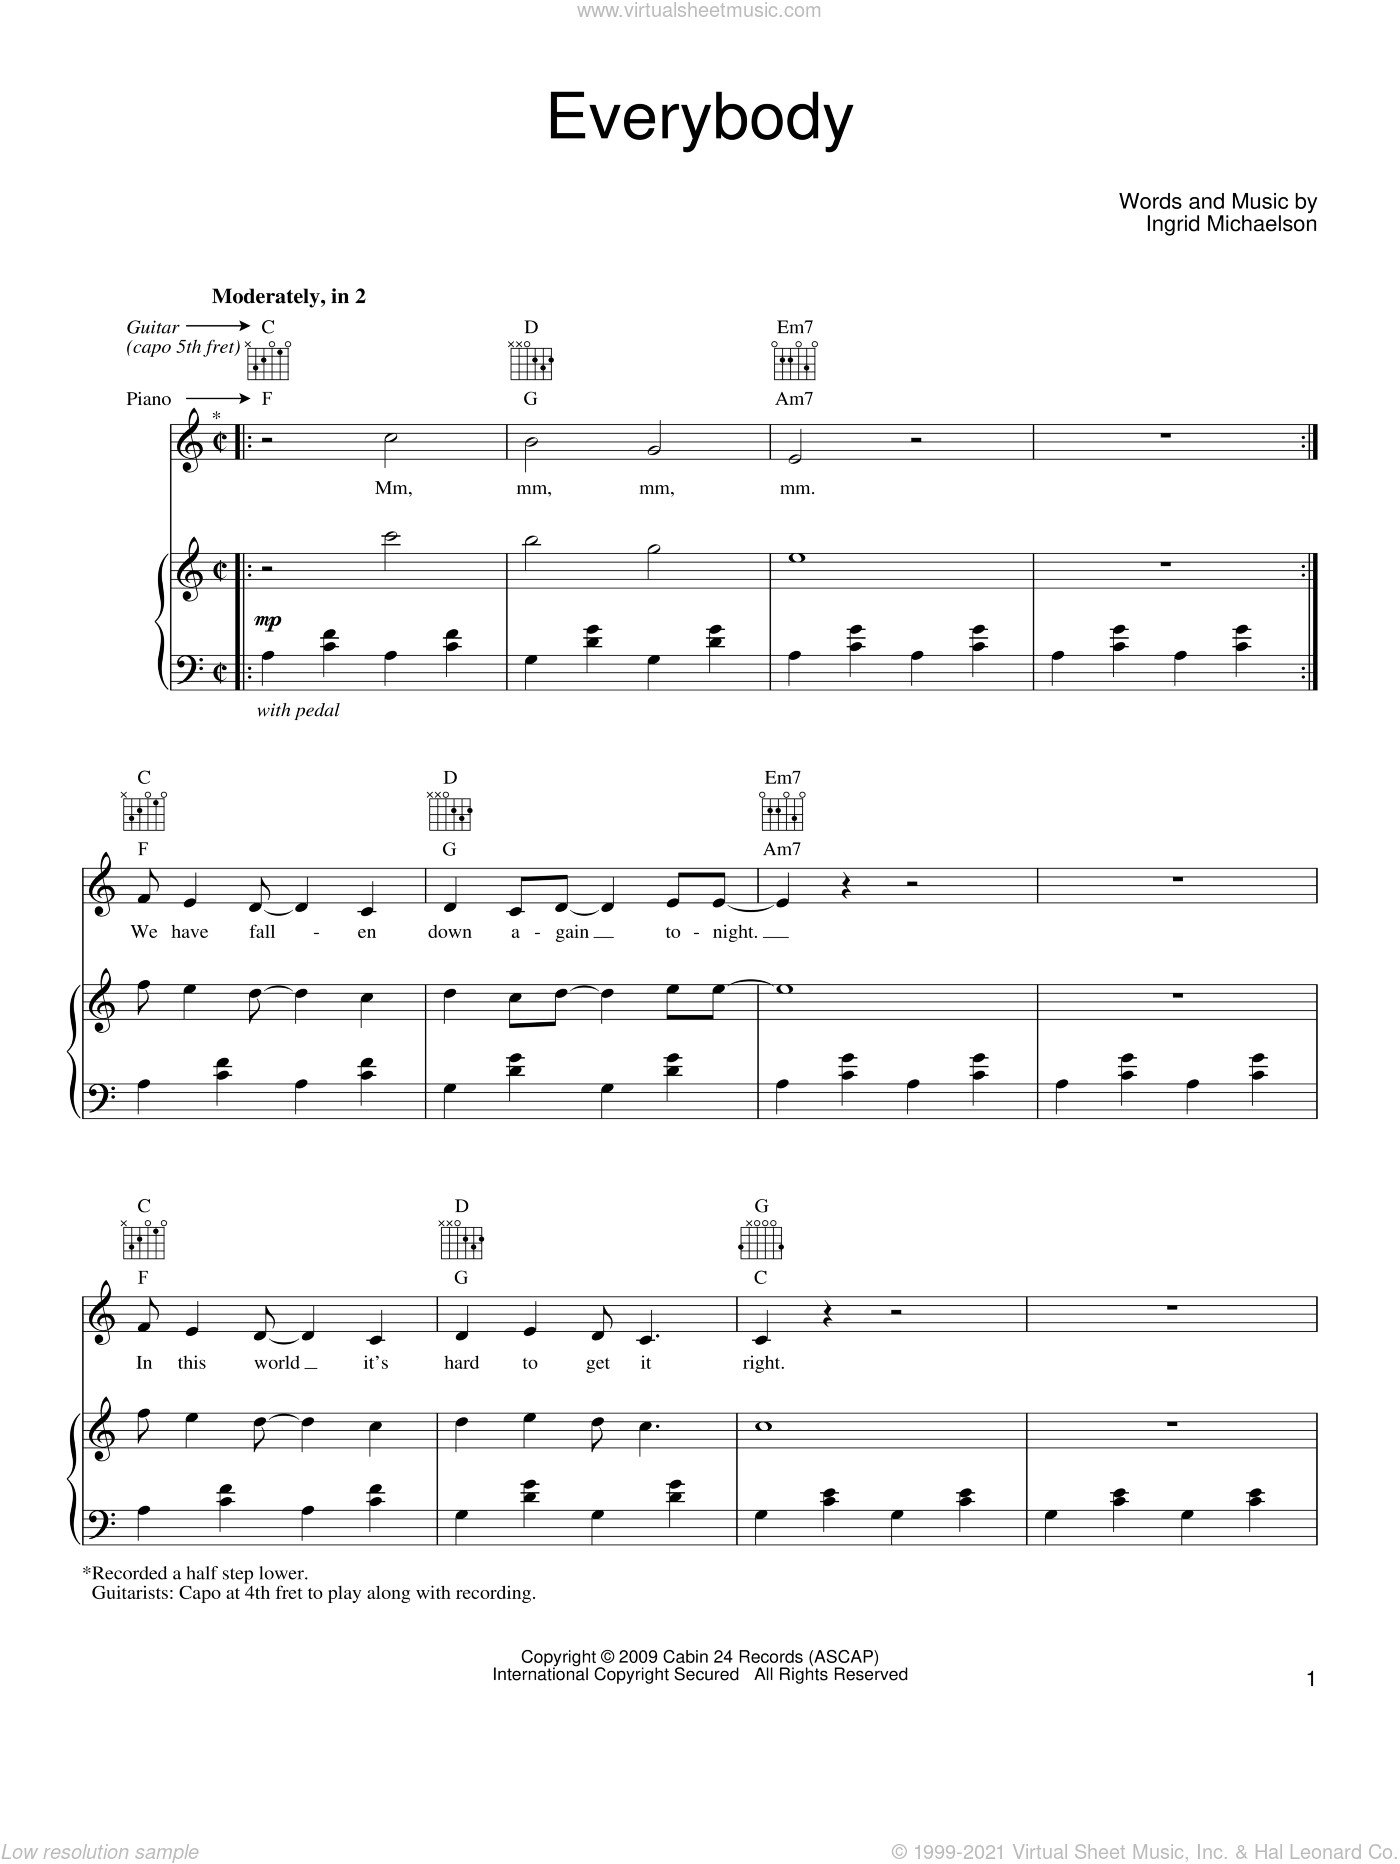 Everybody sheet music for voice, piano or guitar by Ingrid Michaelson, intermediate skill level